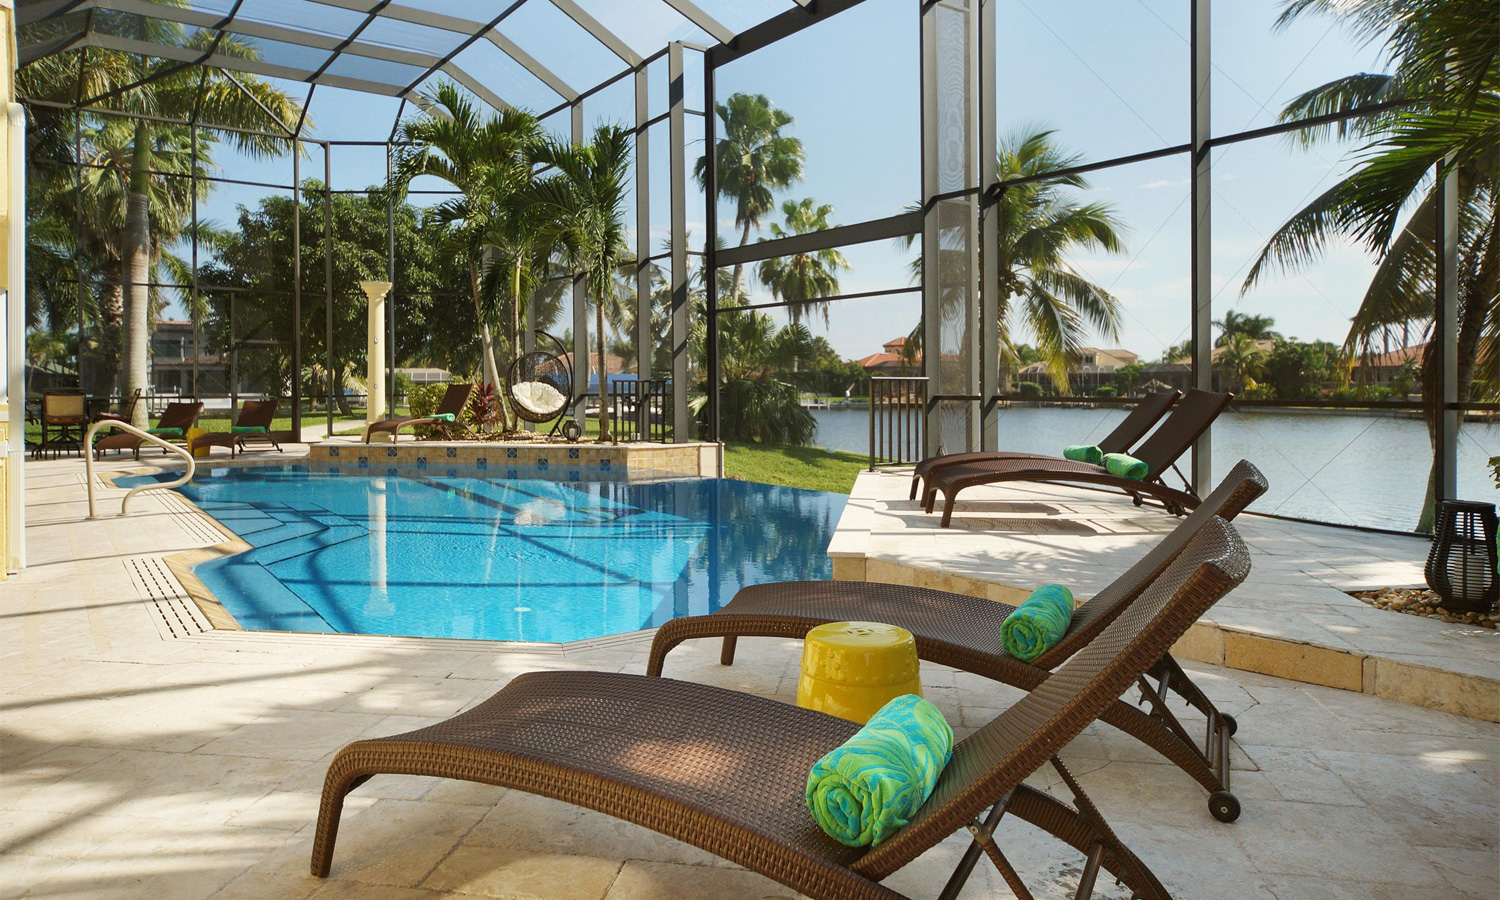 private beach rentals in Florida